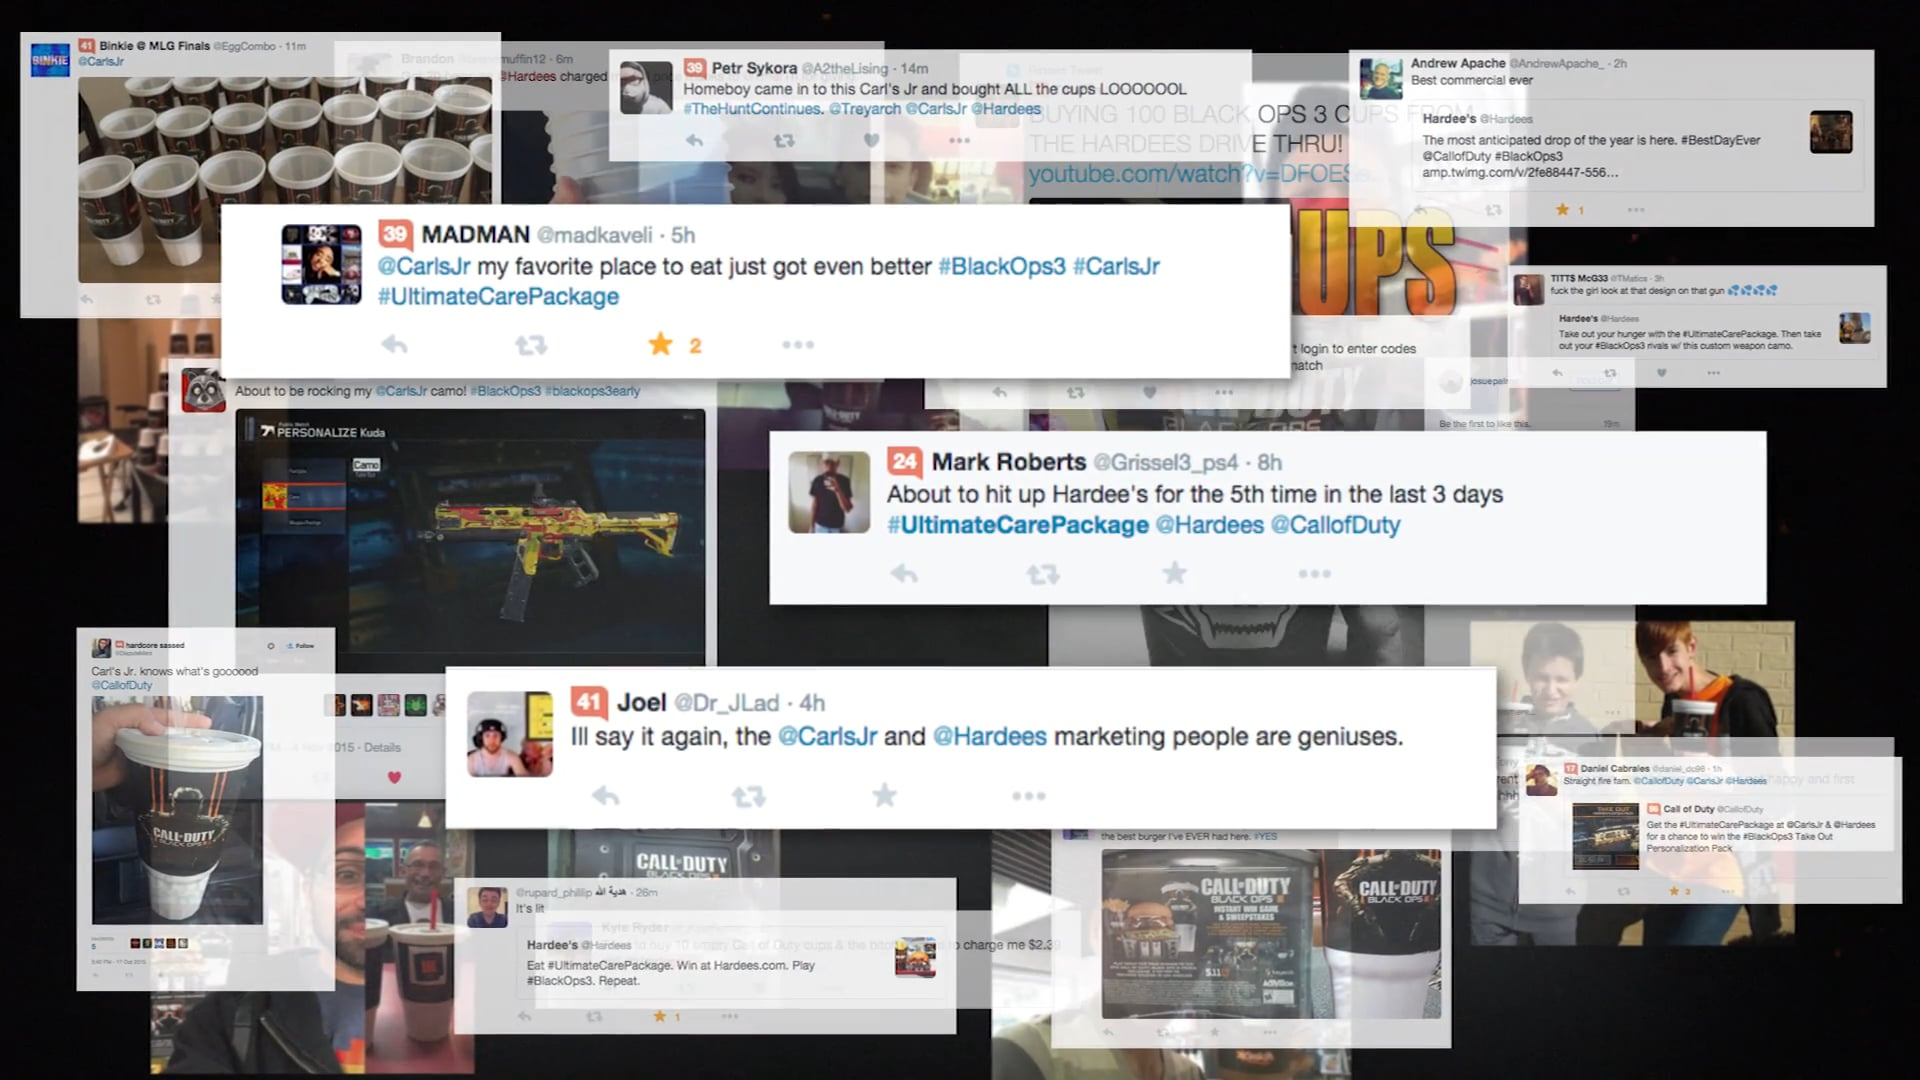 CASE STUDY - Call of Duty Best Day Ever - Carl's Jr. & Activision